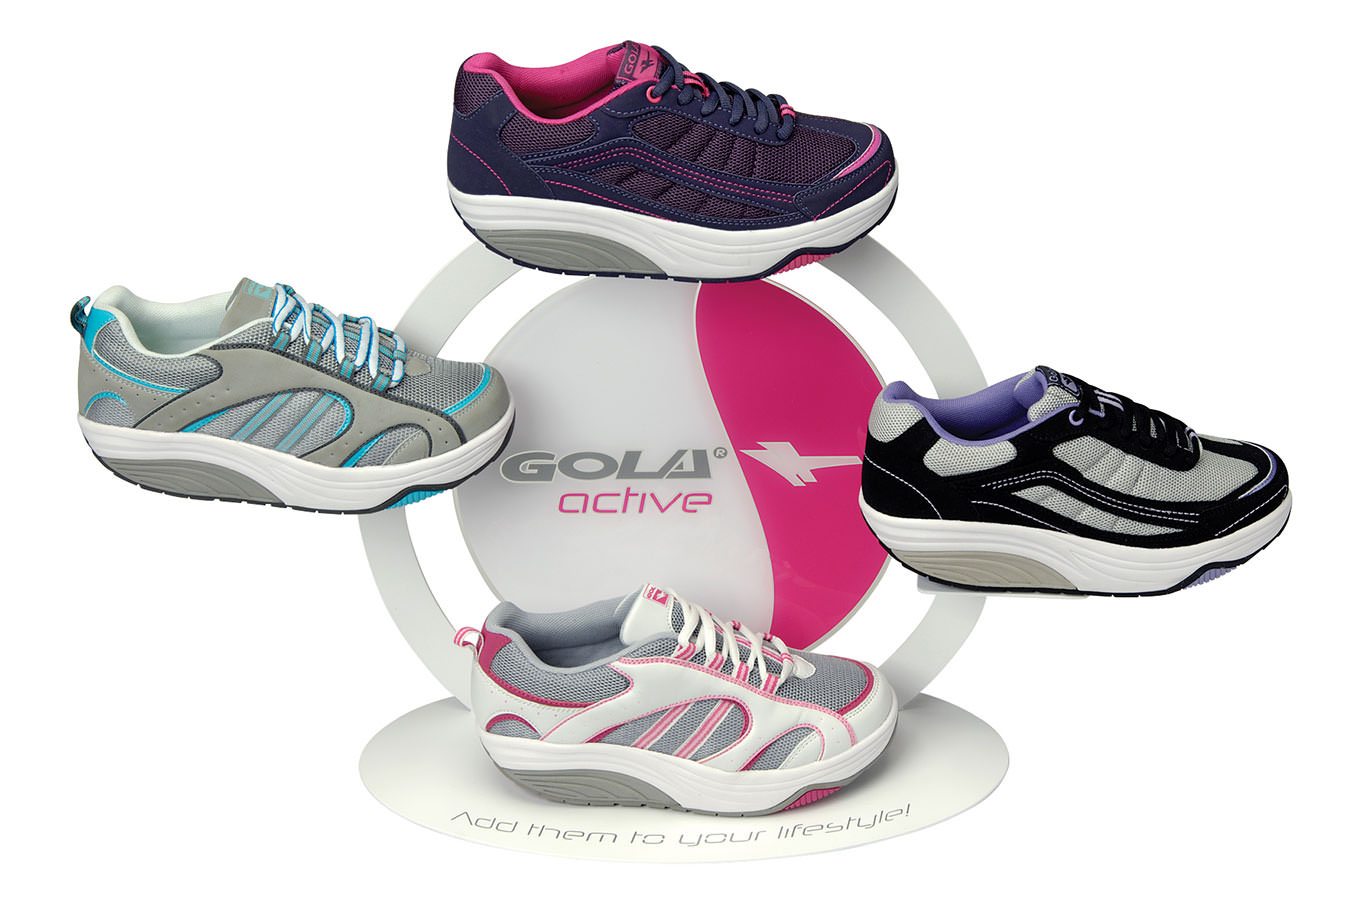 Gola - Toning trainer display for Gola